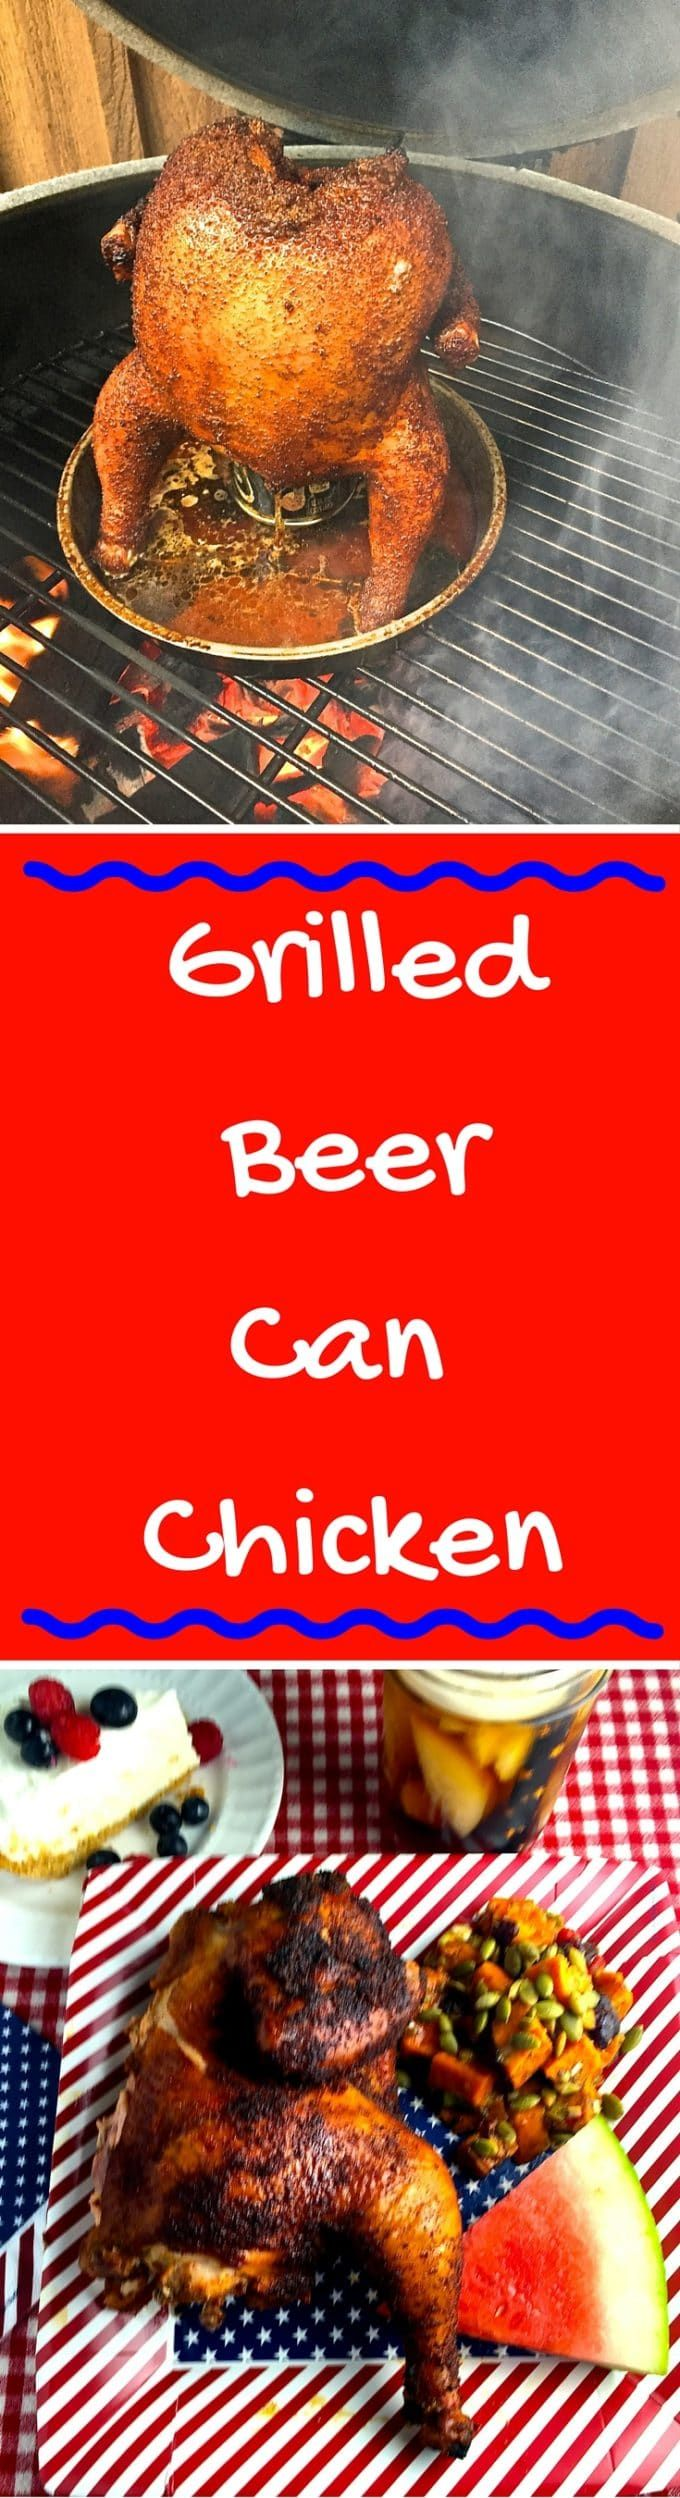 Grilled BeerCan Chicken